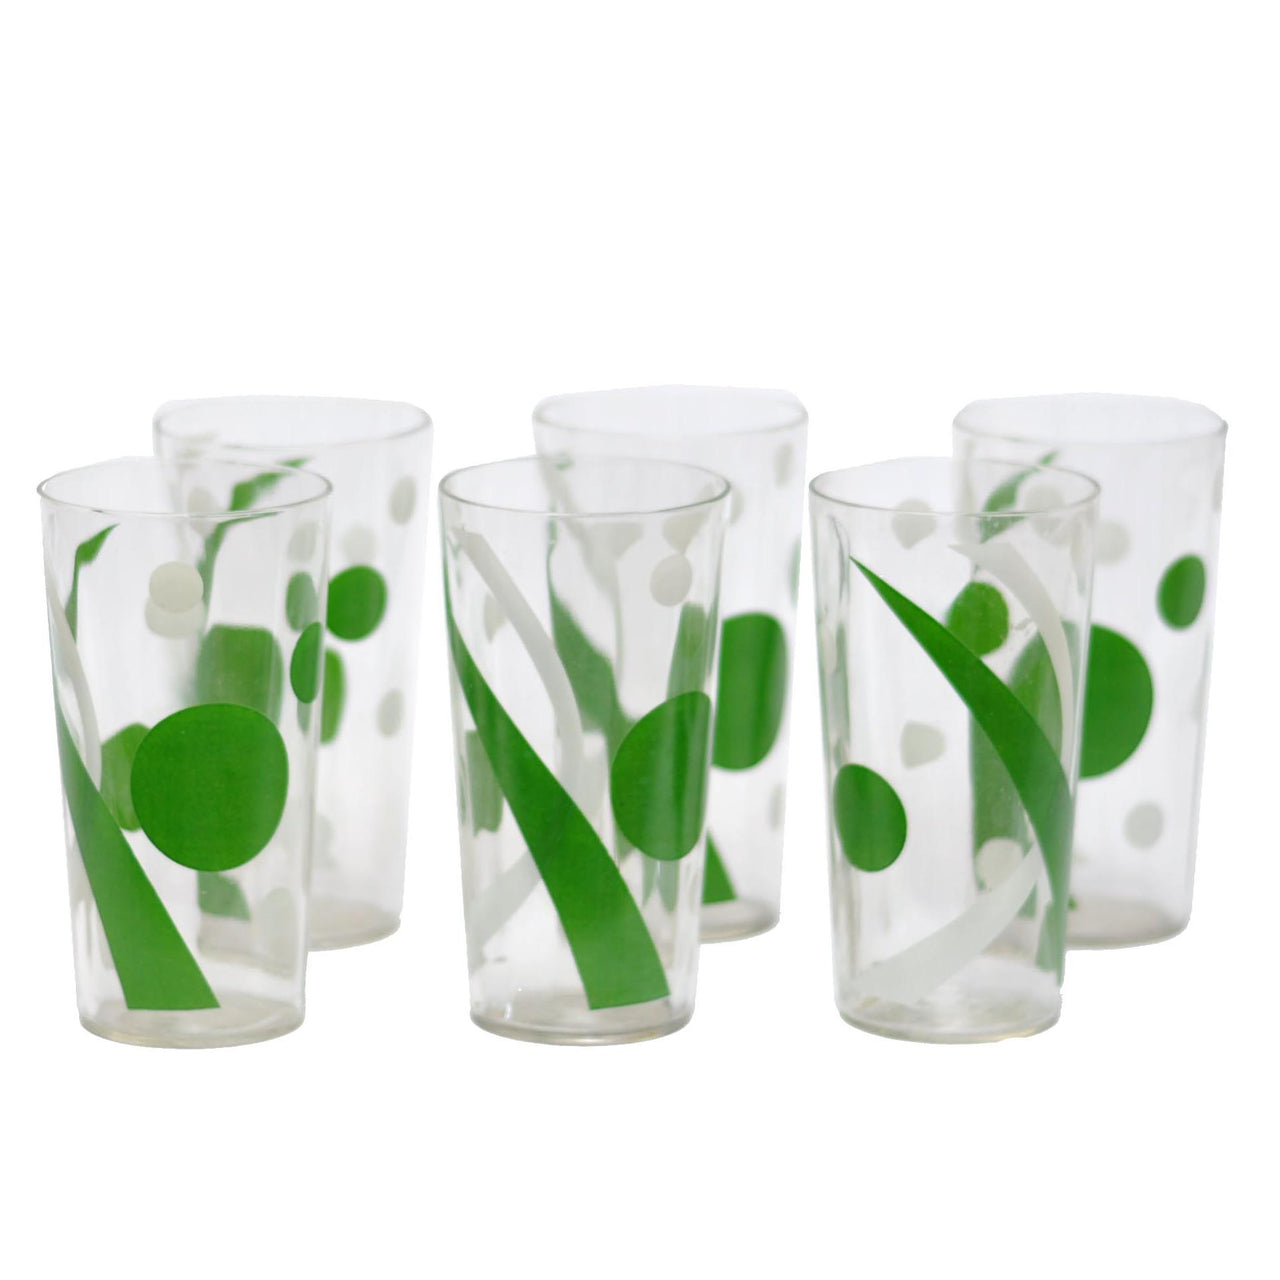 Green & White Art Deco Tumblers | The Hour Shop Vintage